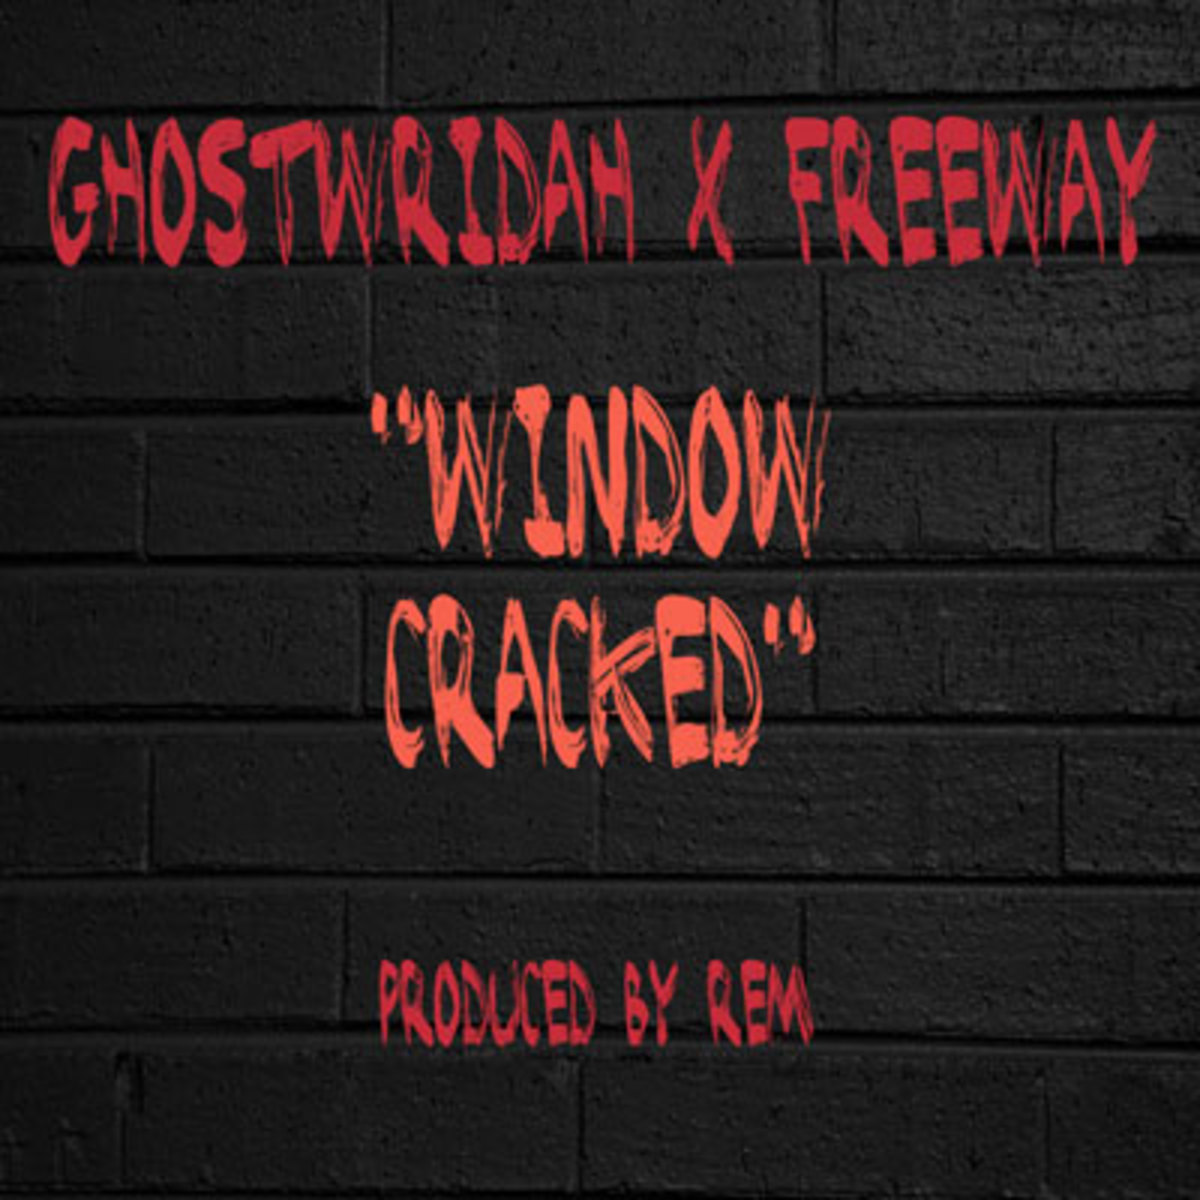 ghostwridah-windowcracked.jpg